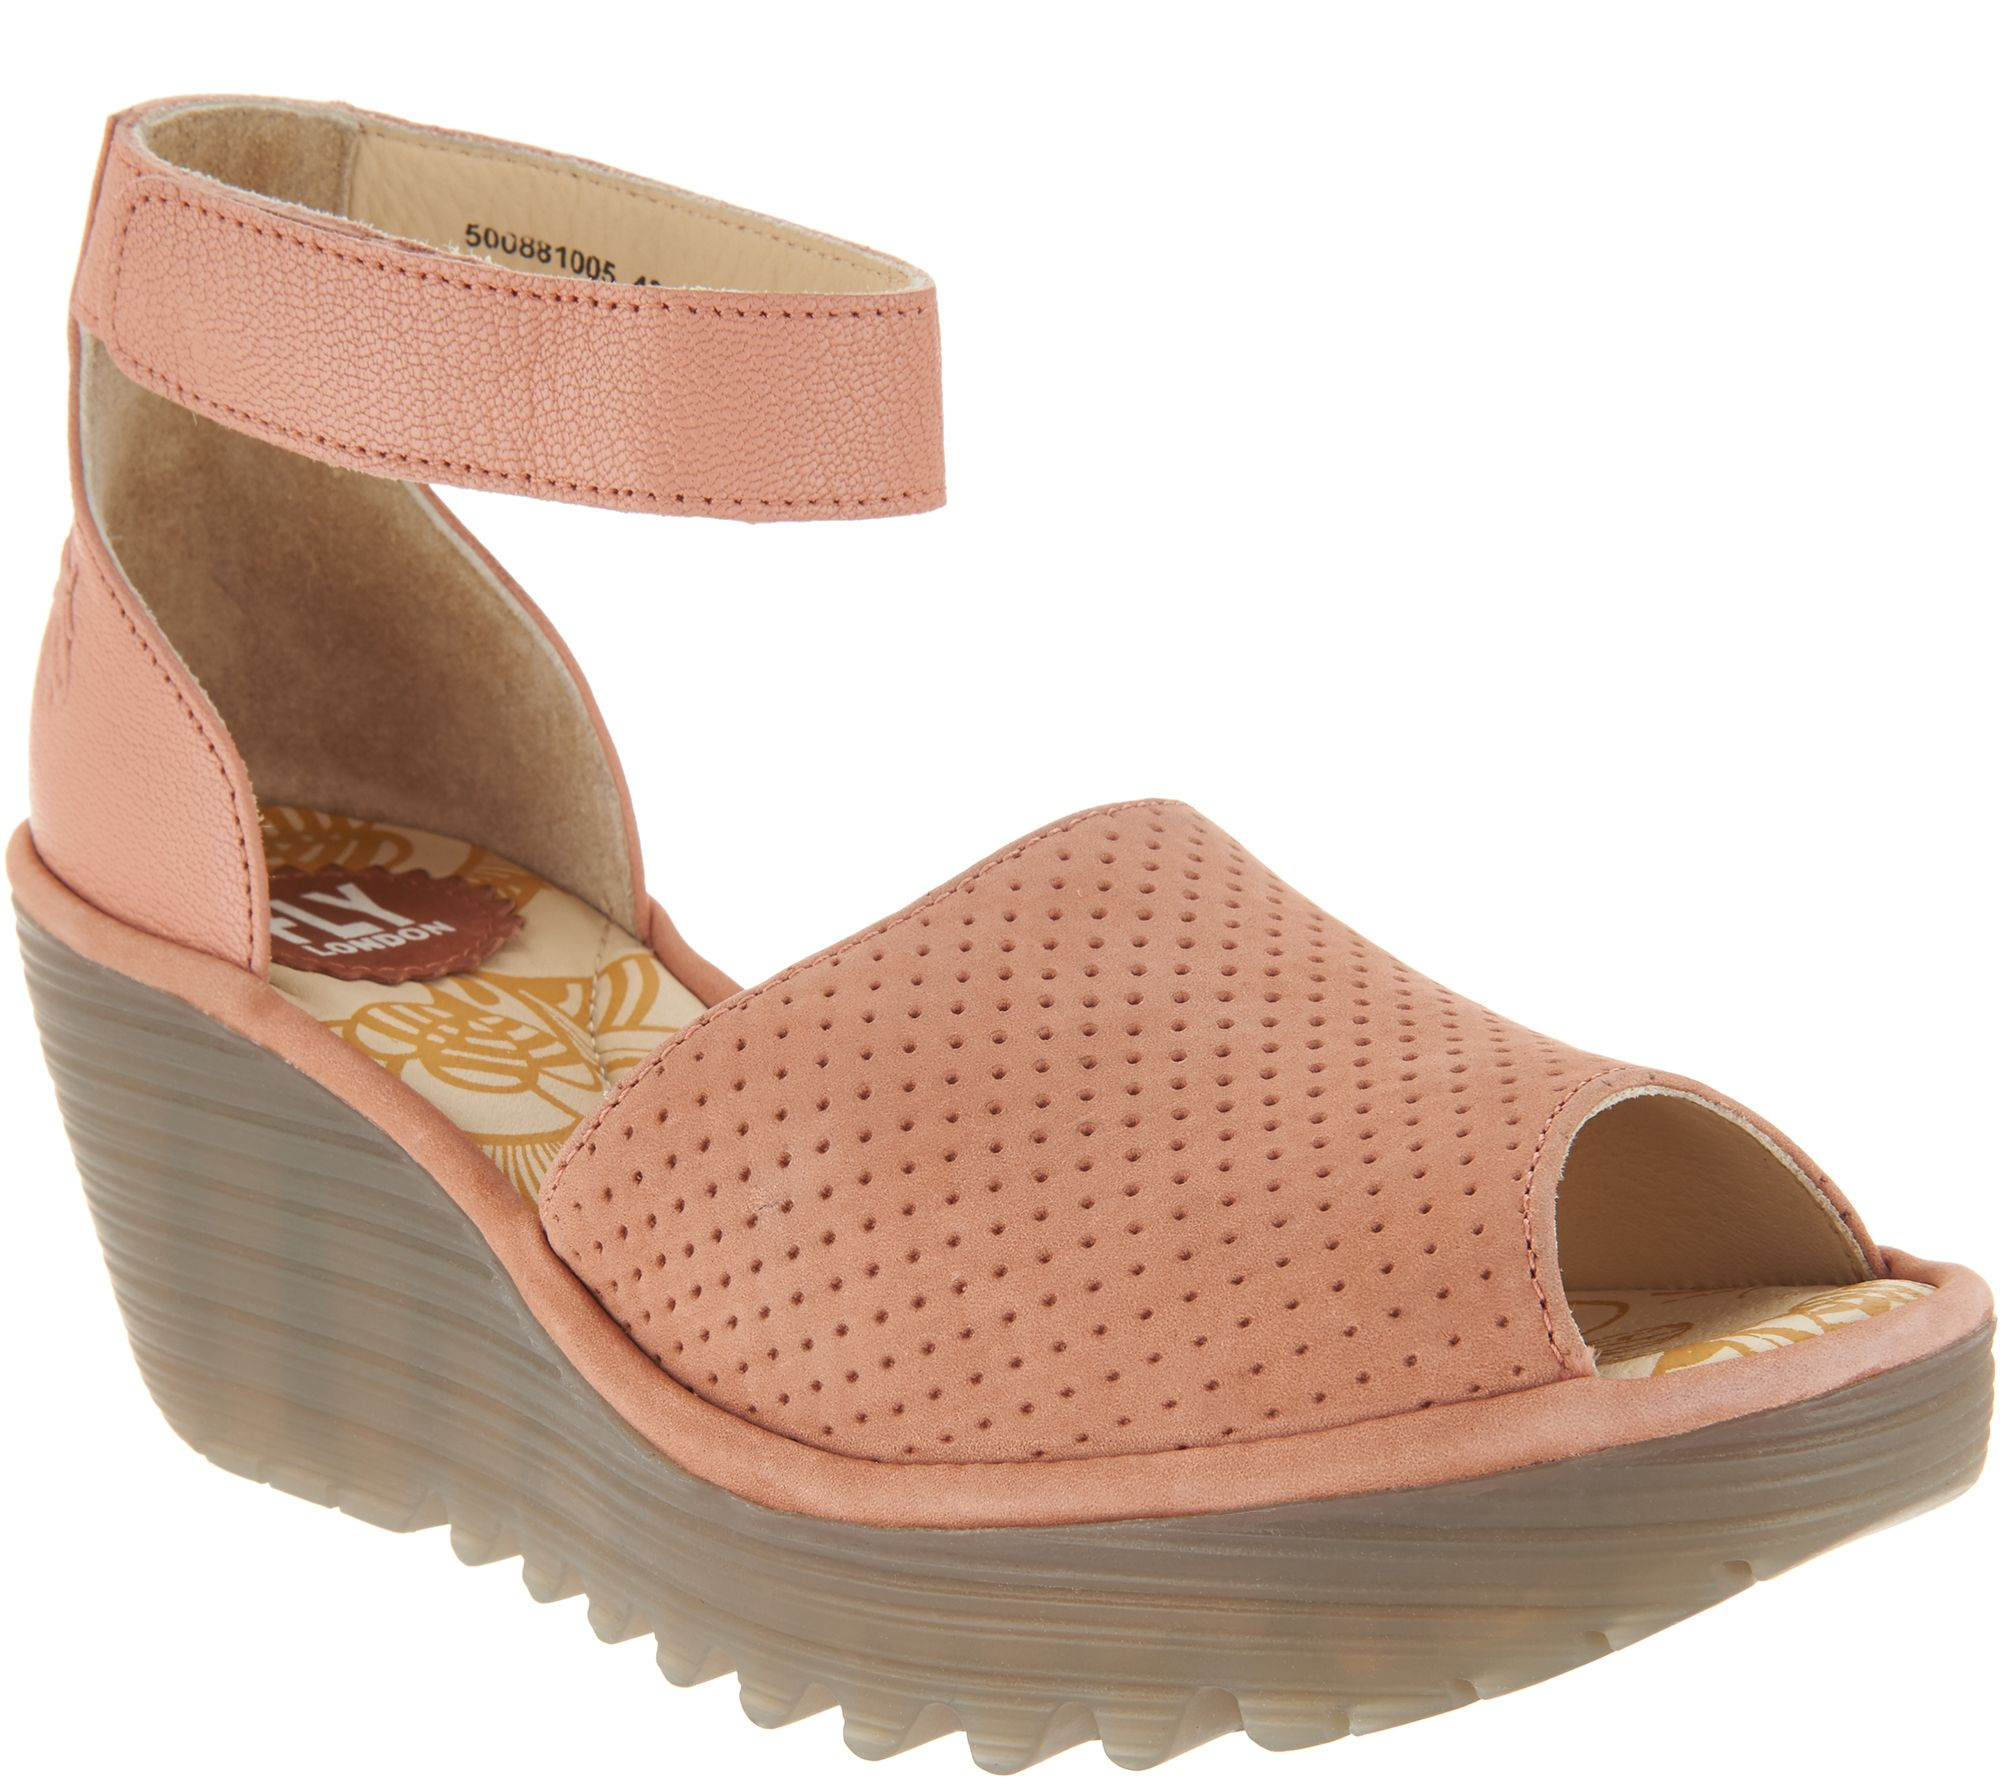 c6d941d38dc FLY London Perforated Leather Wedge Sandals - Yake - Page 1 — QVC.com